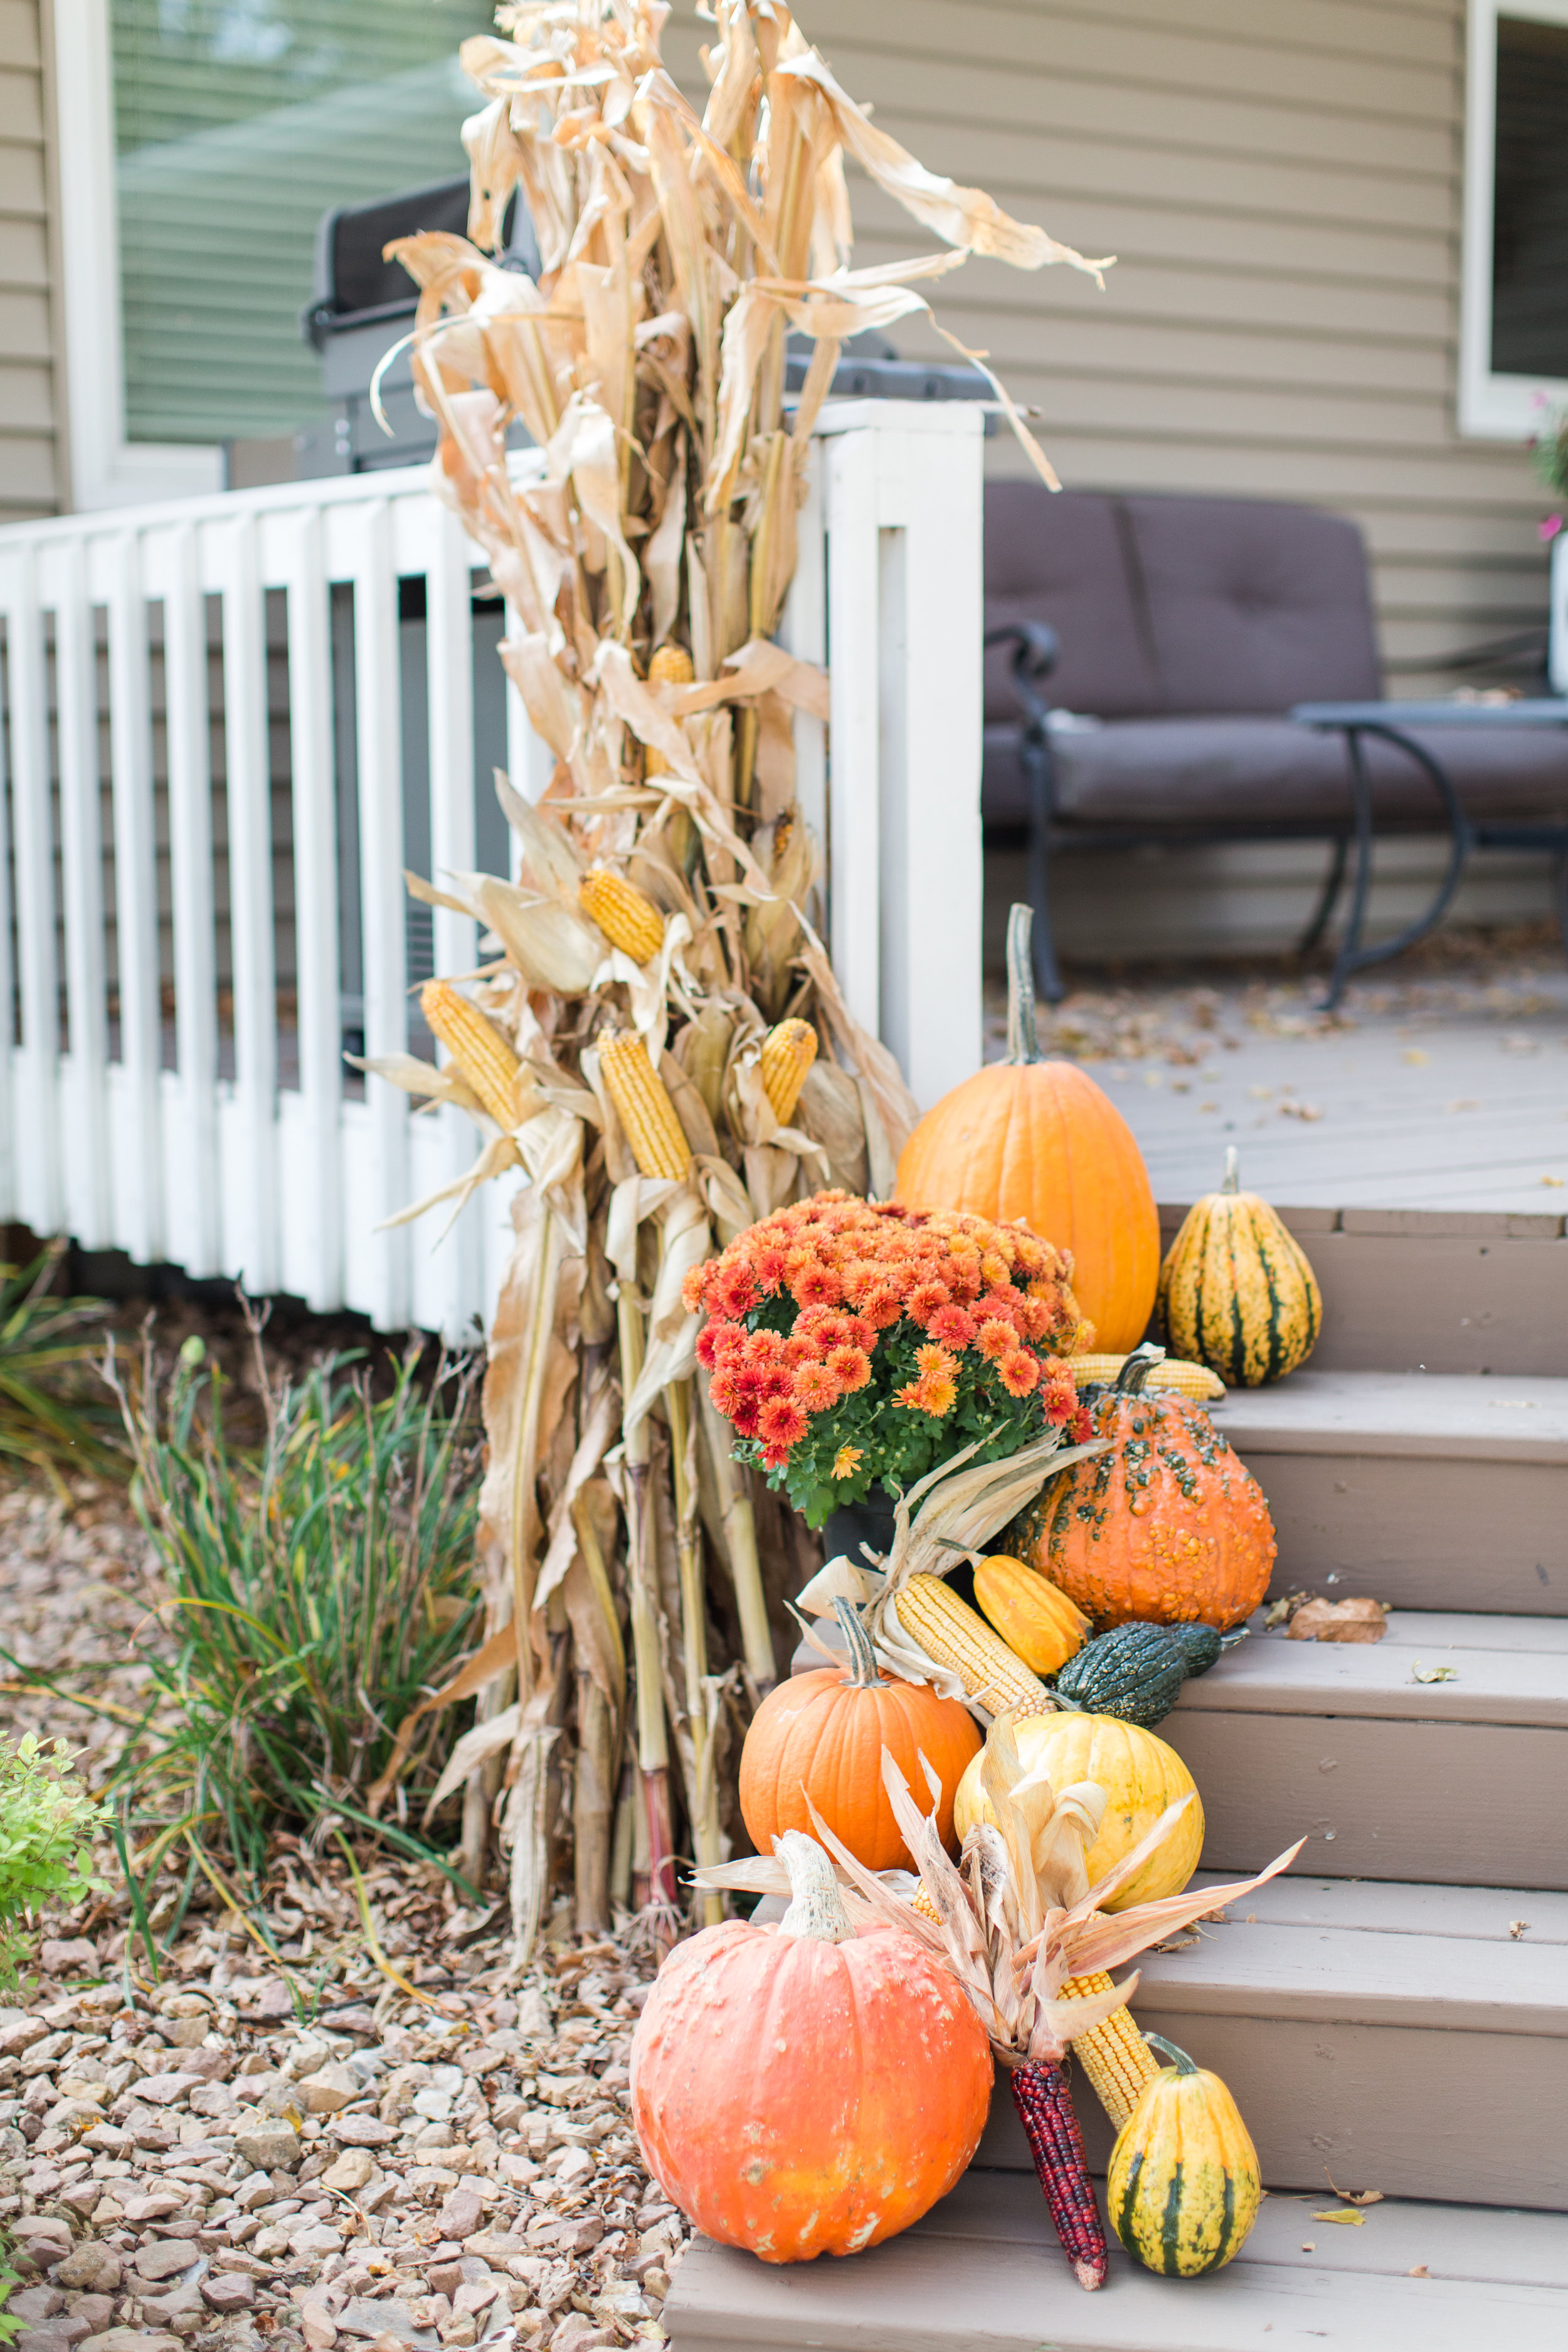 fall decor | front porch | pumpkins | straw bale | decorating | stephanie lynn photography